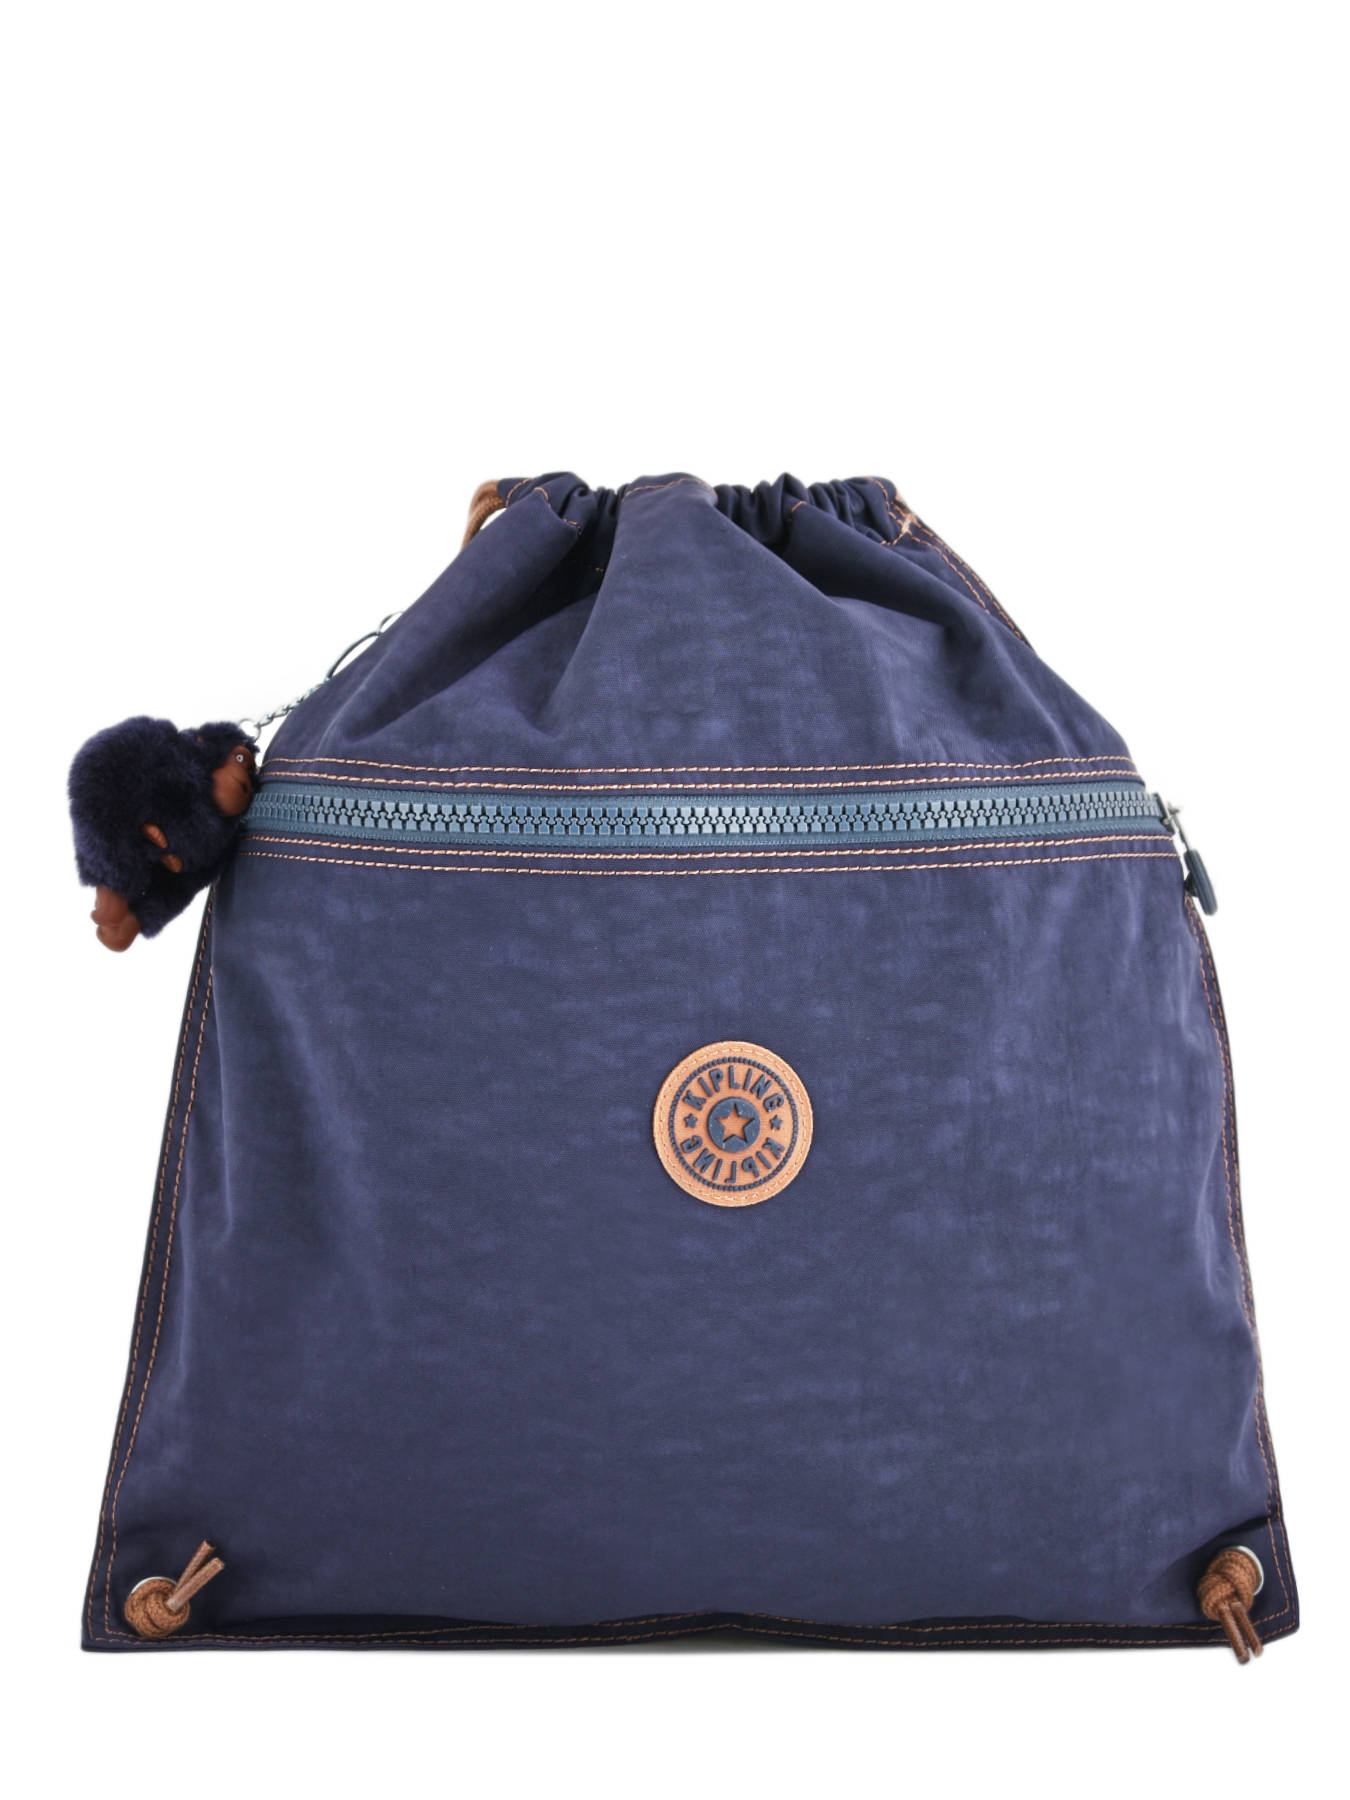 School Kipling Sac Back Dos To Sur Supertaboo Edisac be À UMzVqpS